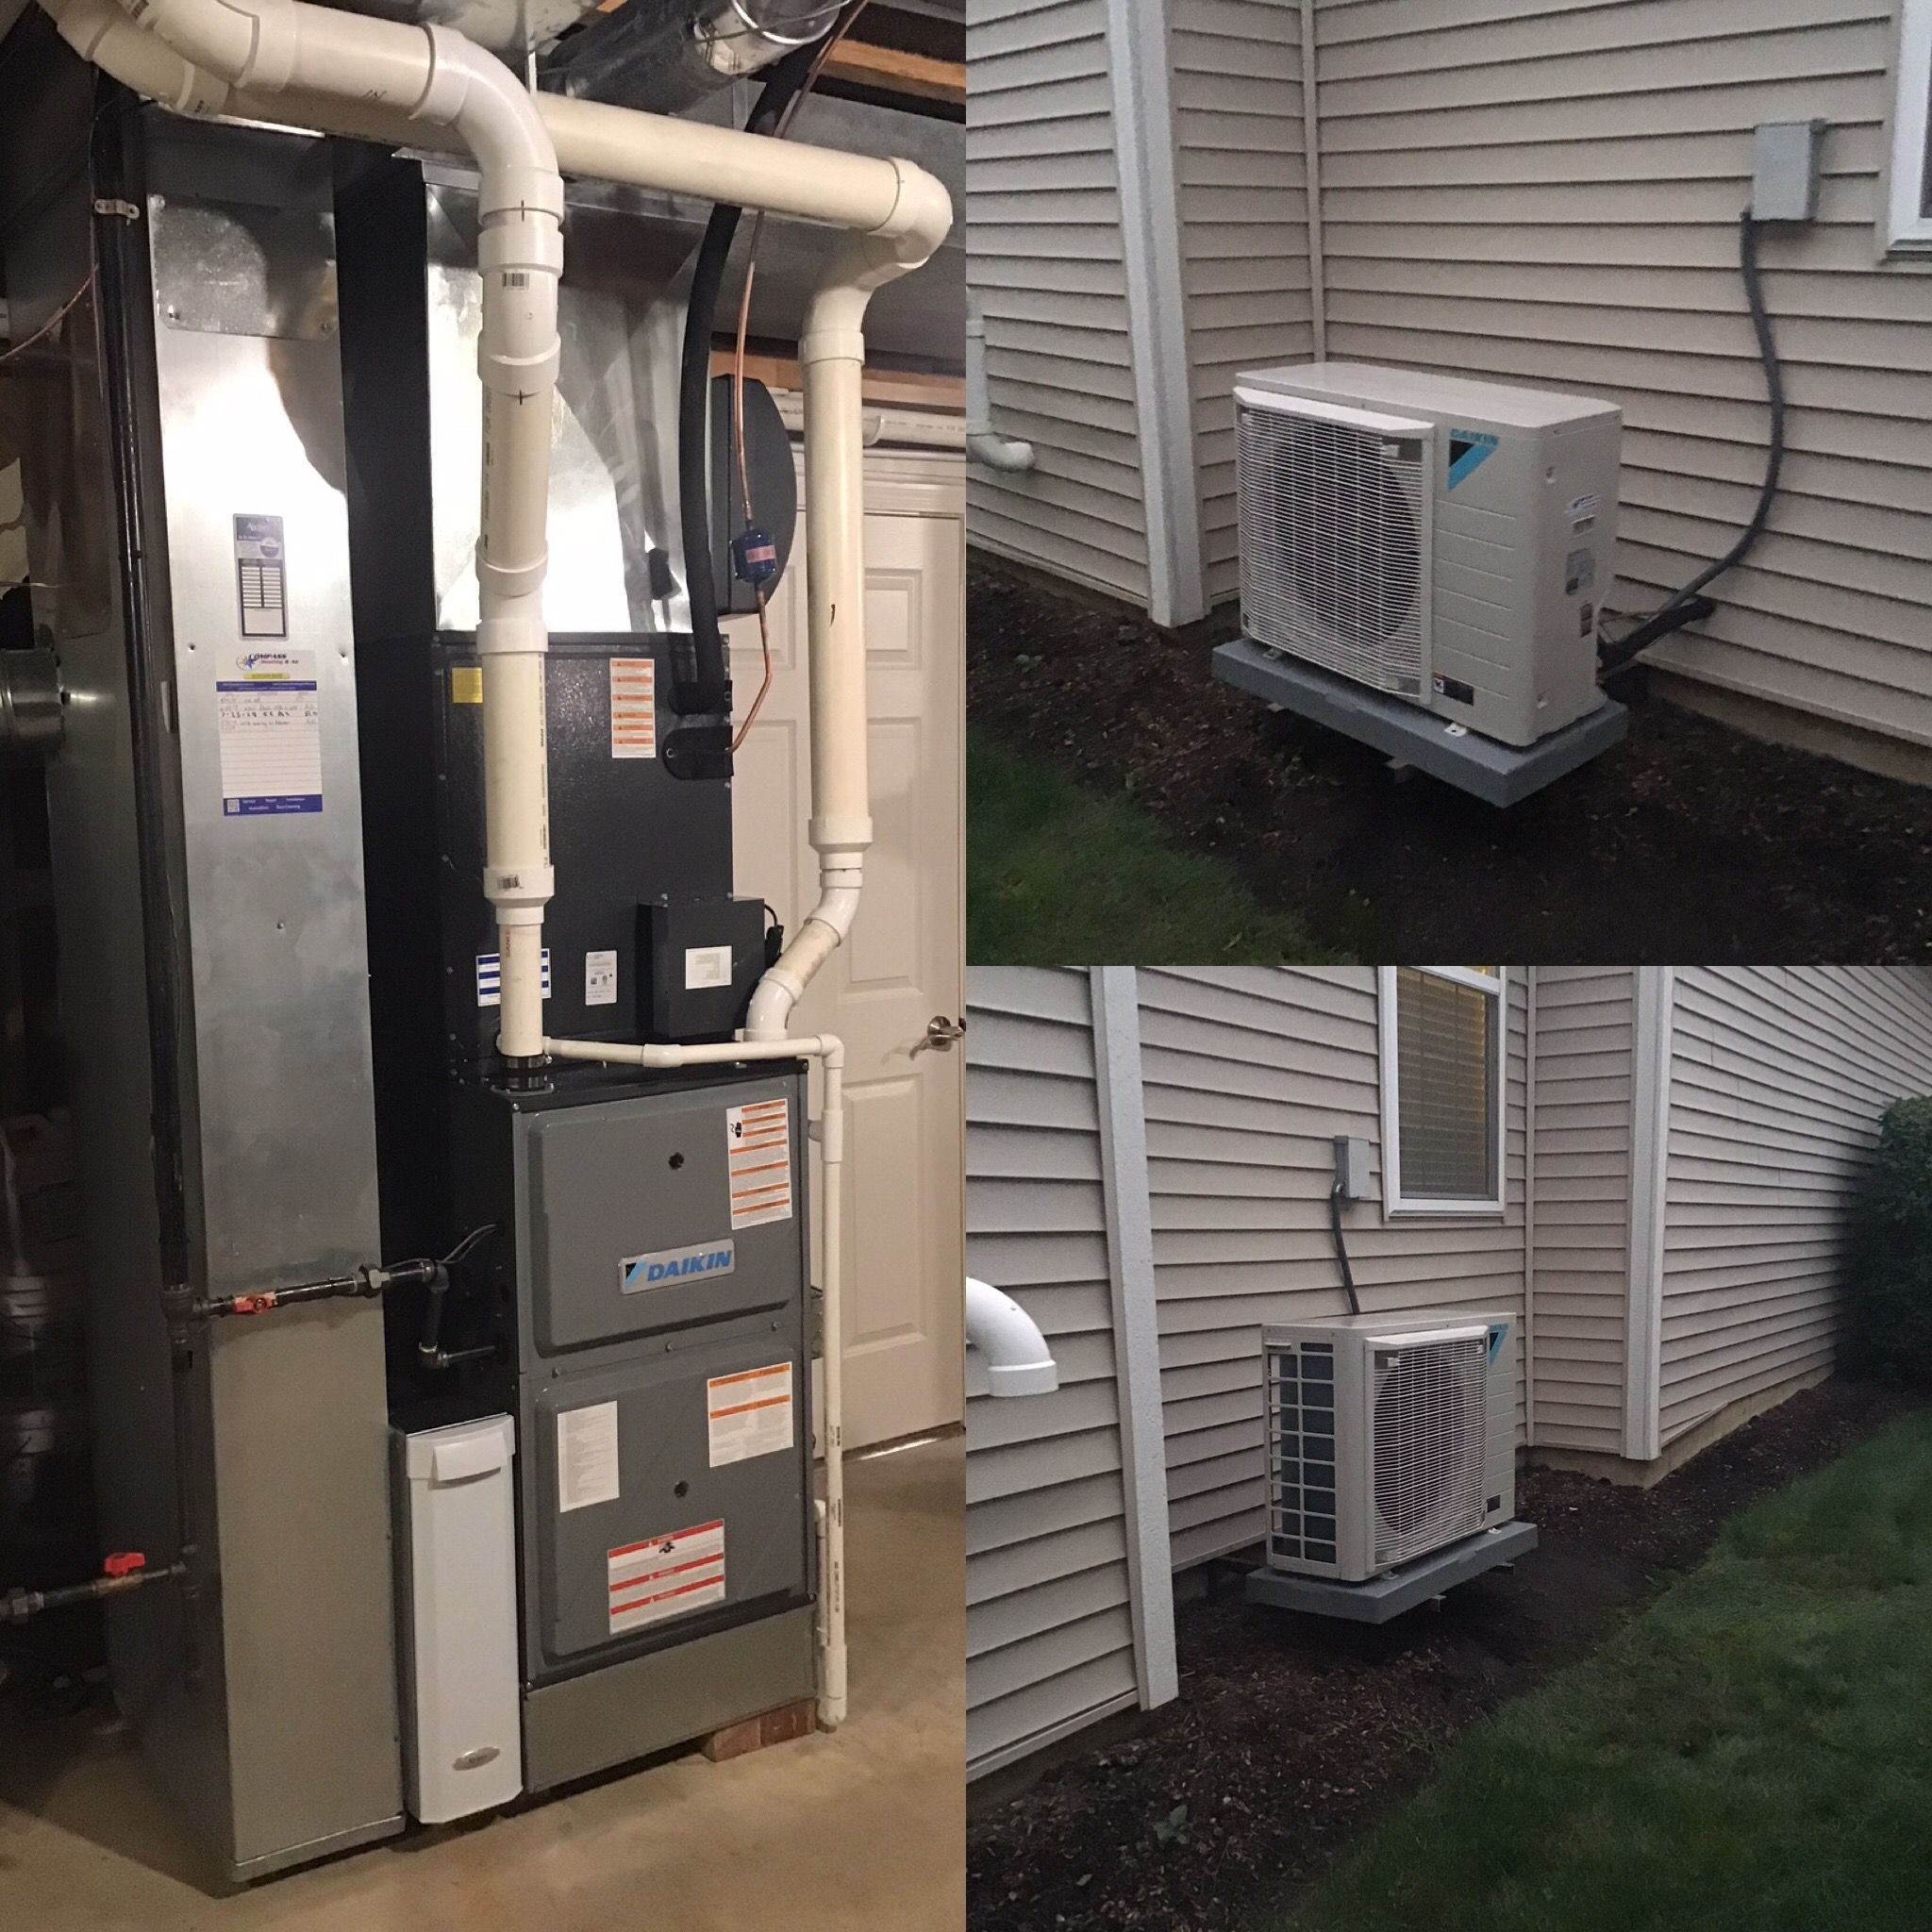 Daikin Fit And Modulating Furnace Heating And Air Conditioning